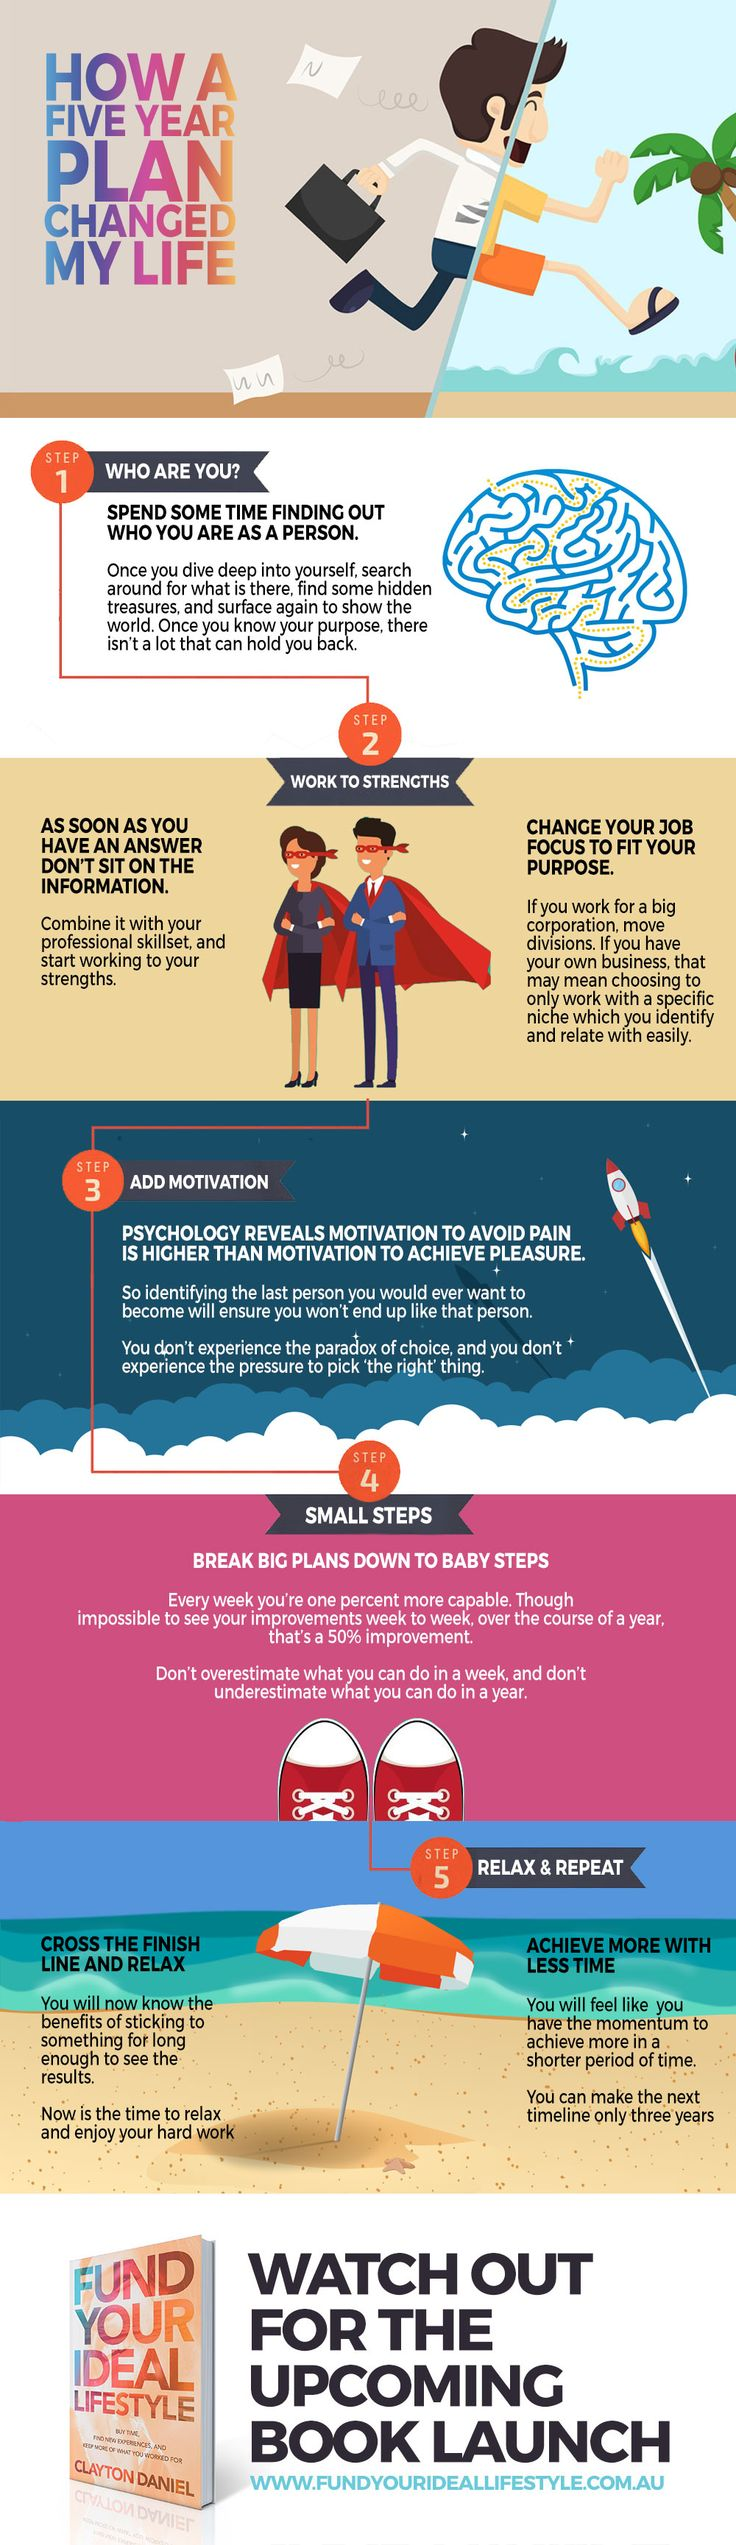 best images about best of fund your ideal lifestyle on how a five year plan changed my life infographic